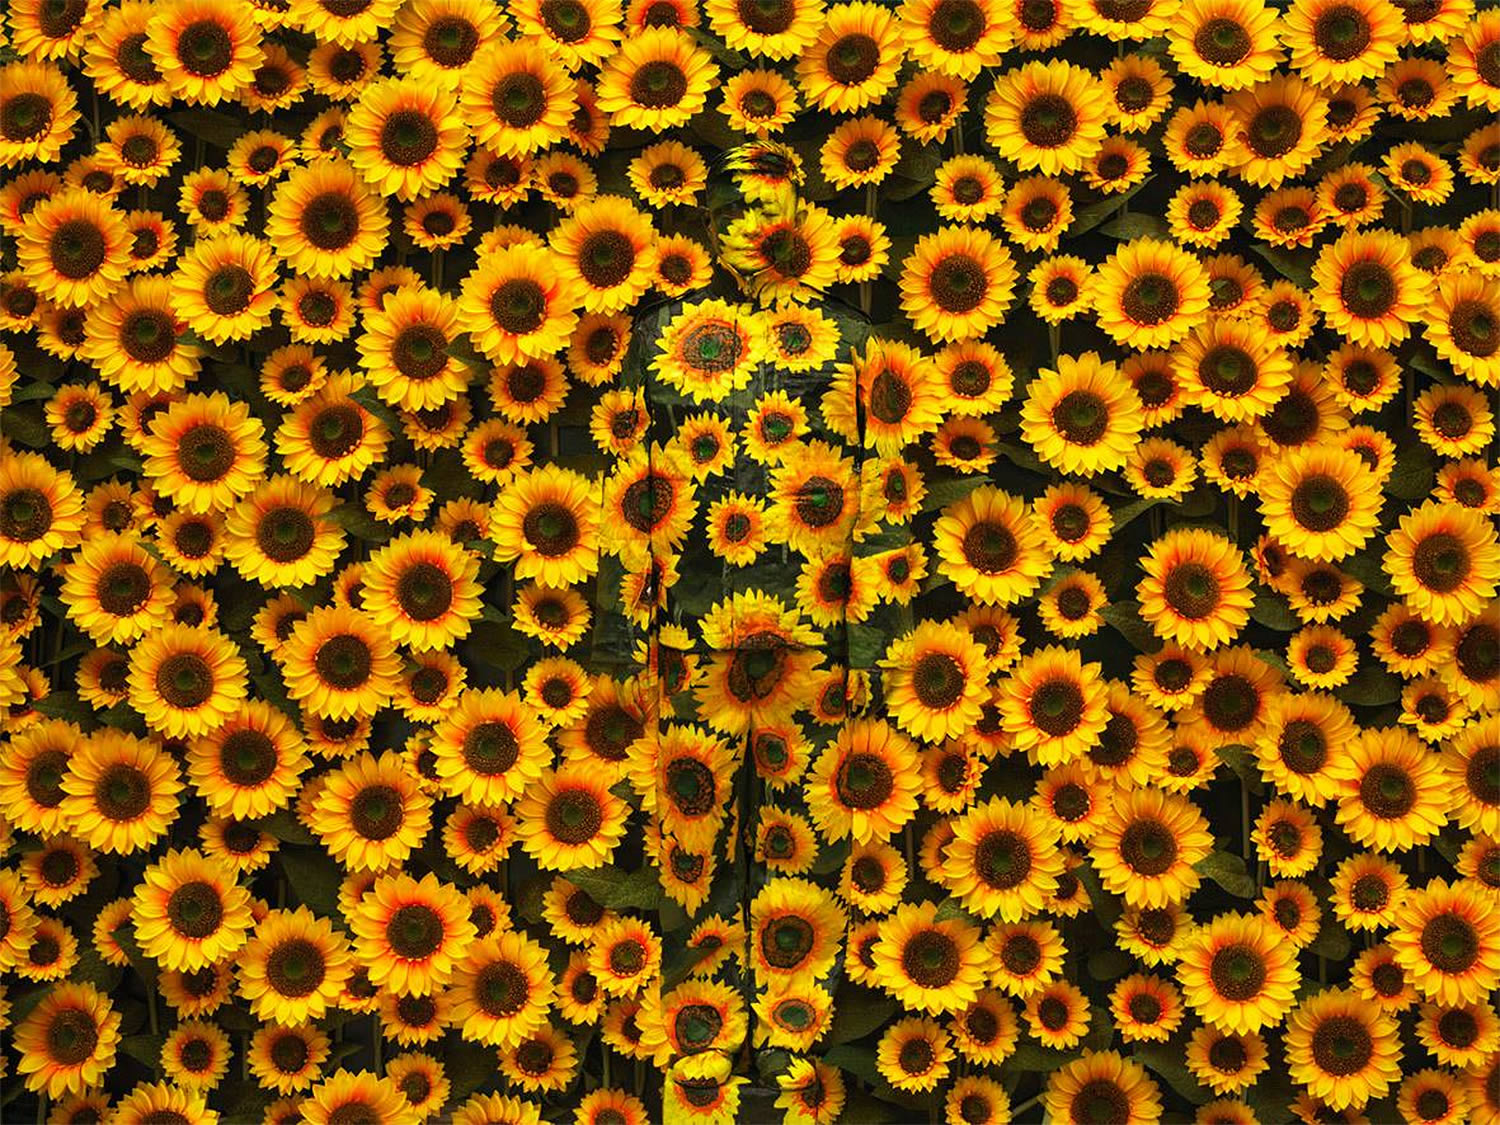 bolin blended into a background of sunflowers